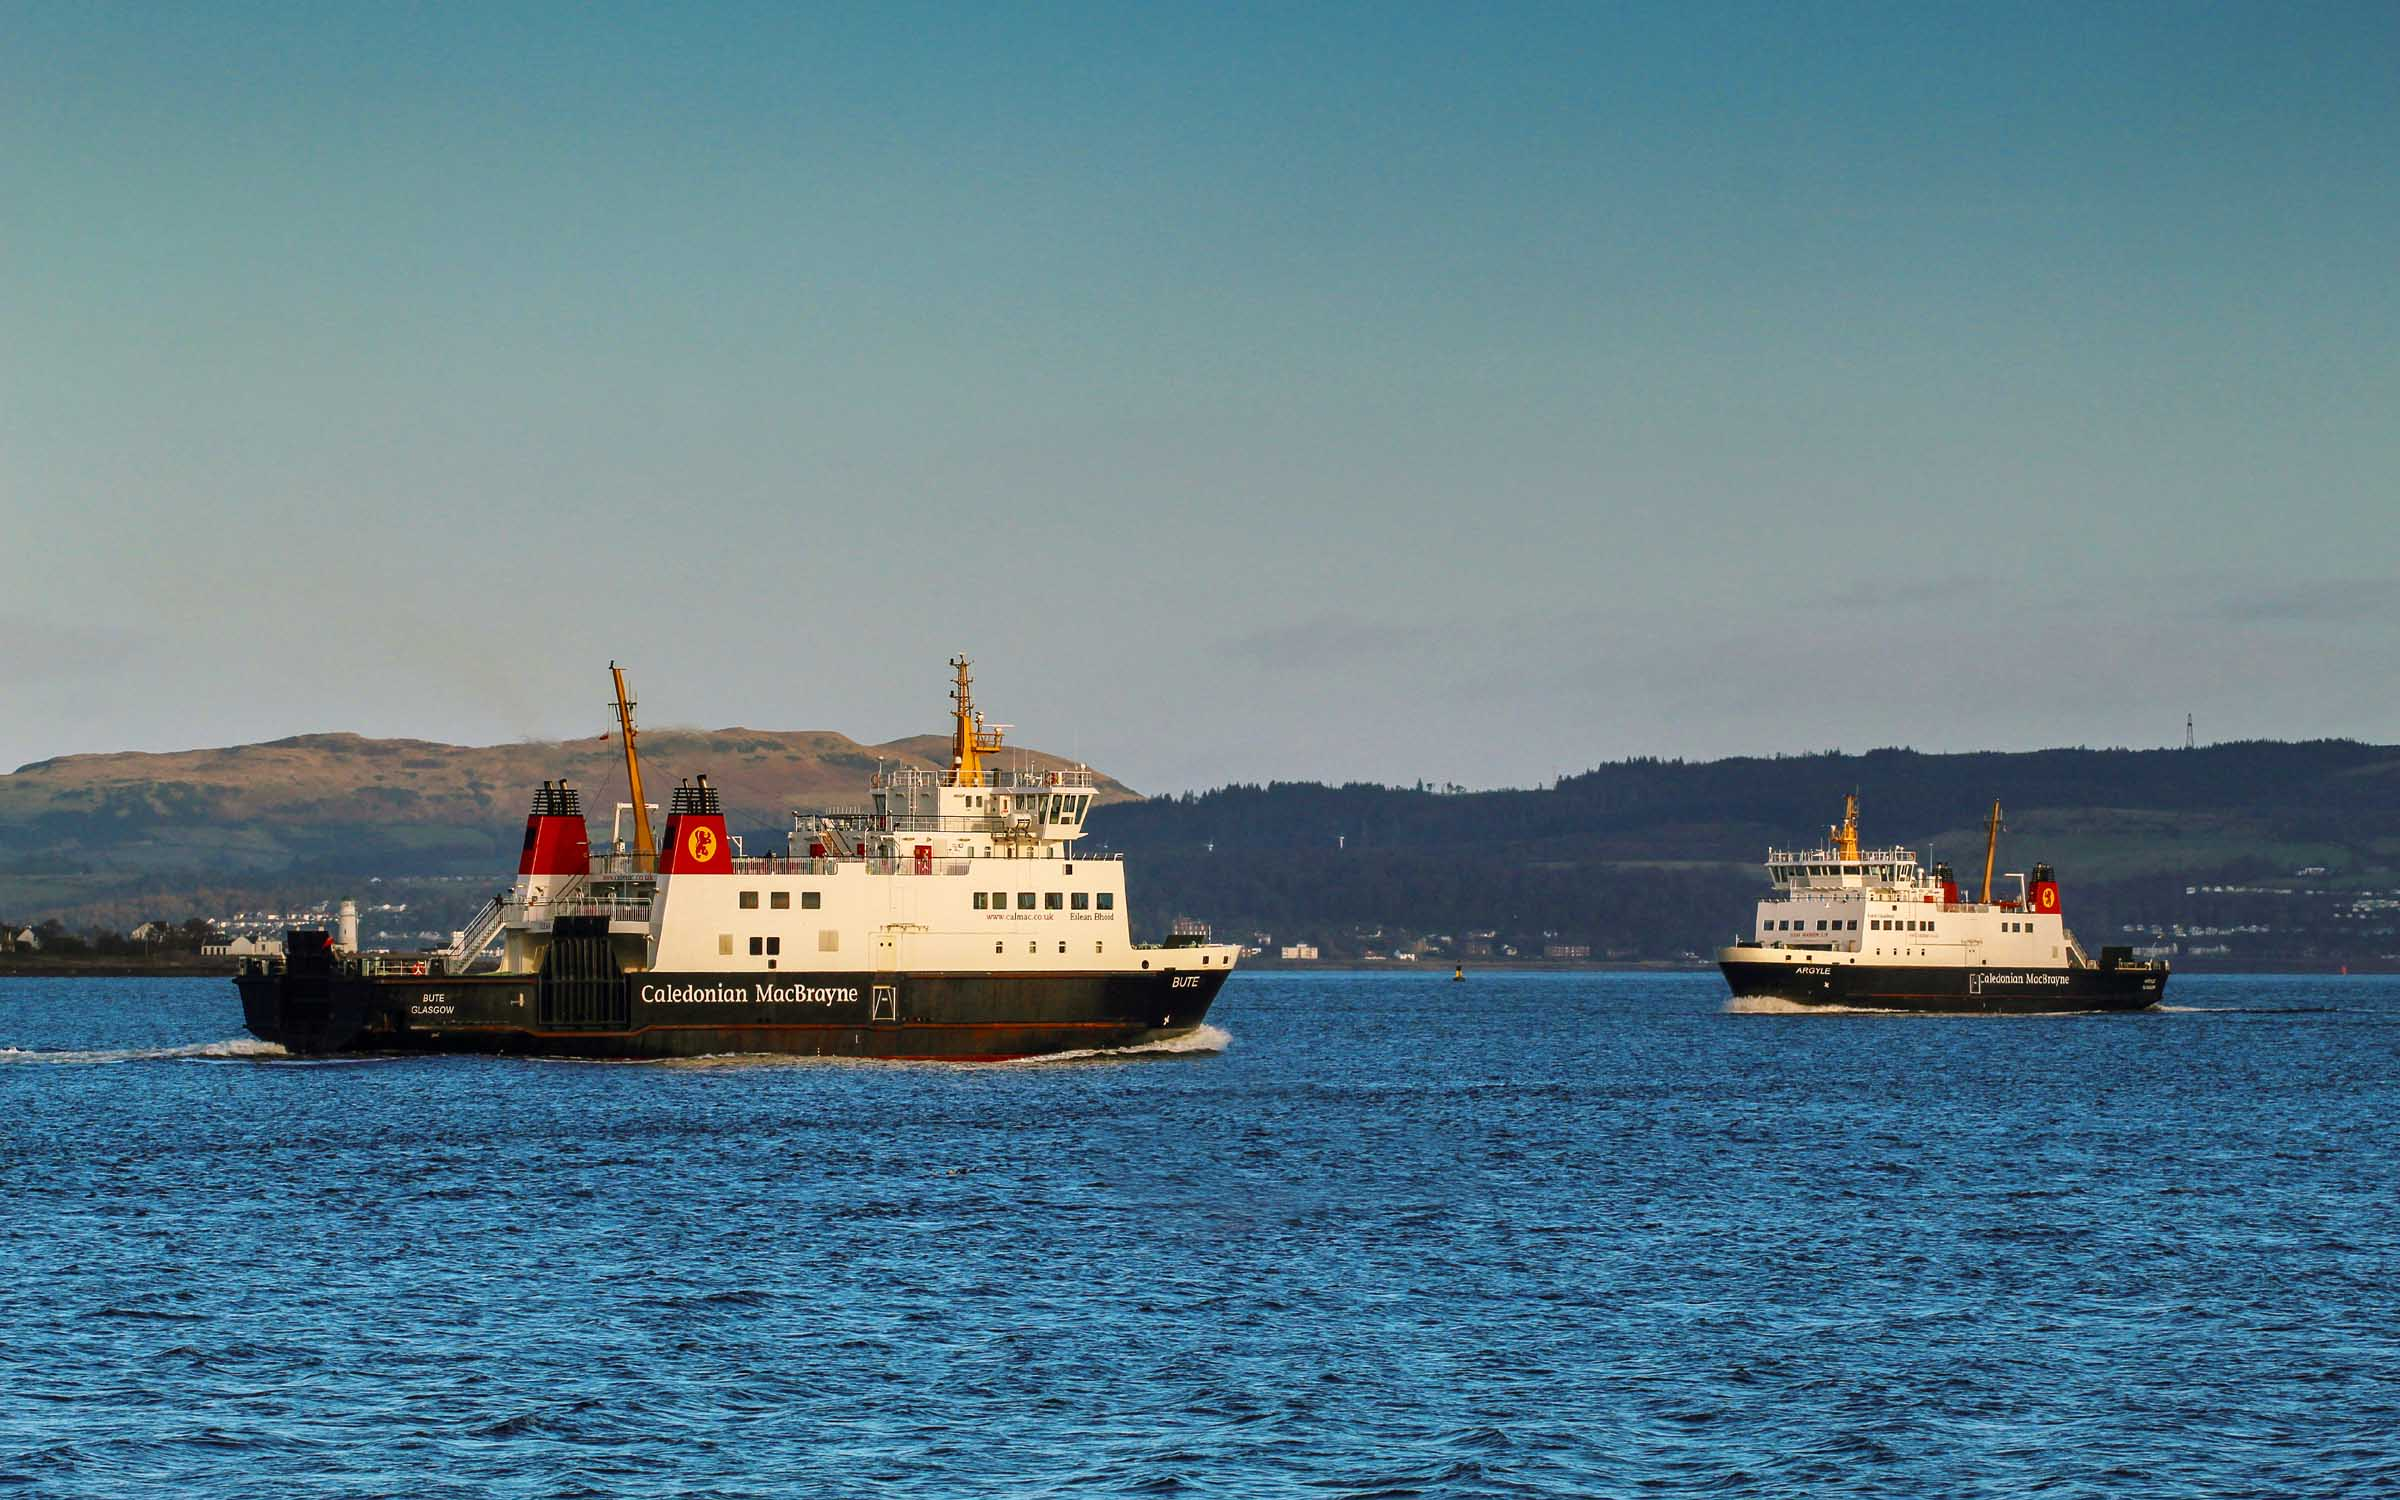 Bute and Argyle passing off Craigmore (Ships of CalMac)